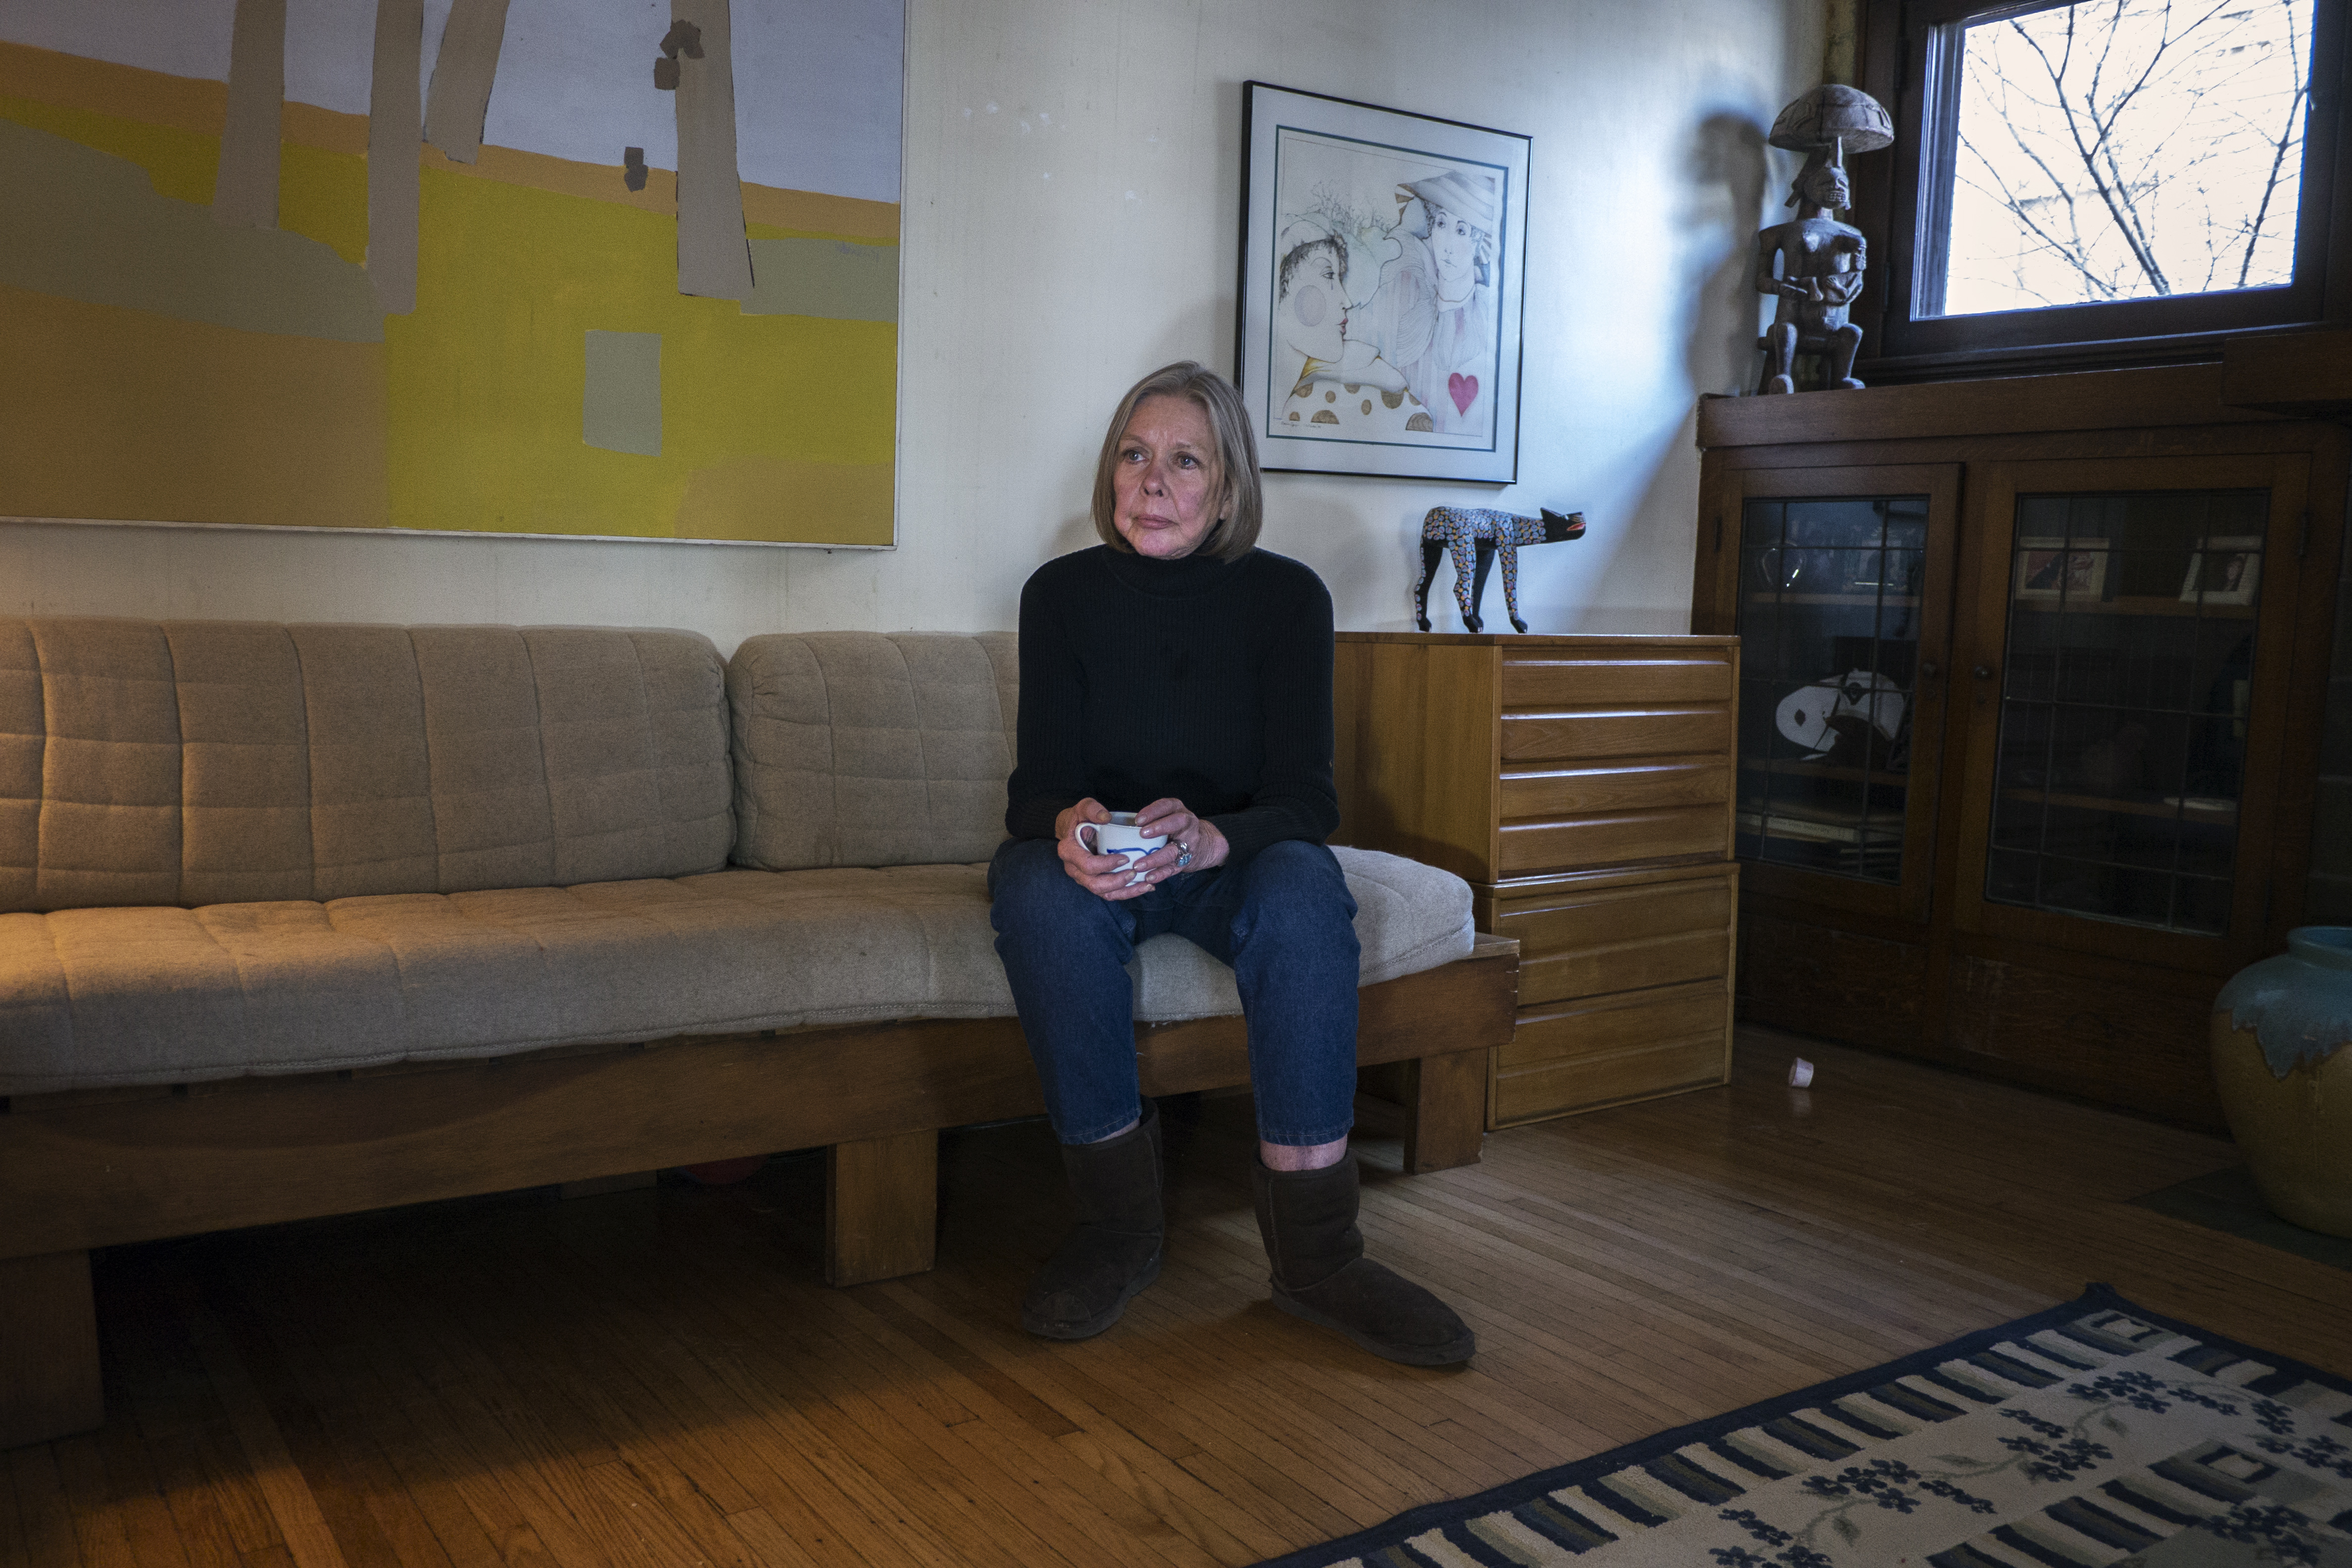 Carol Dunn, the founder of Center for Choice, in the Toledo home of Sue Postal, the clinic's former director, last month.